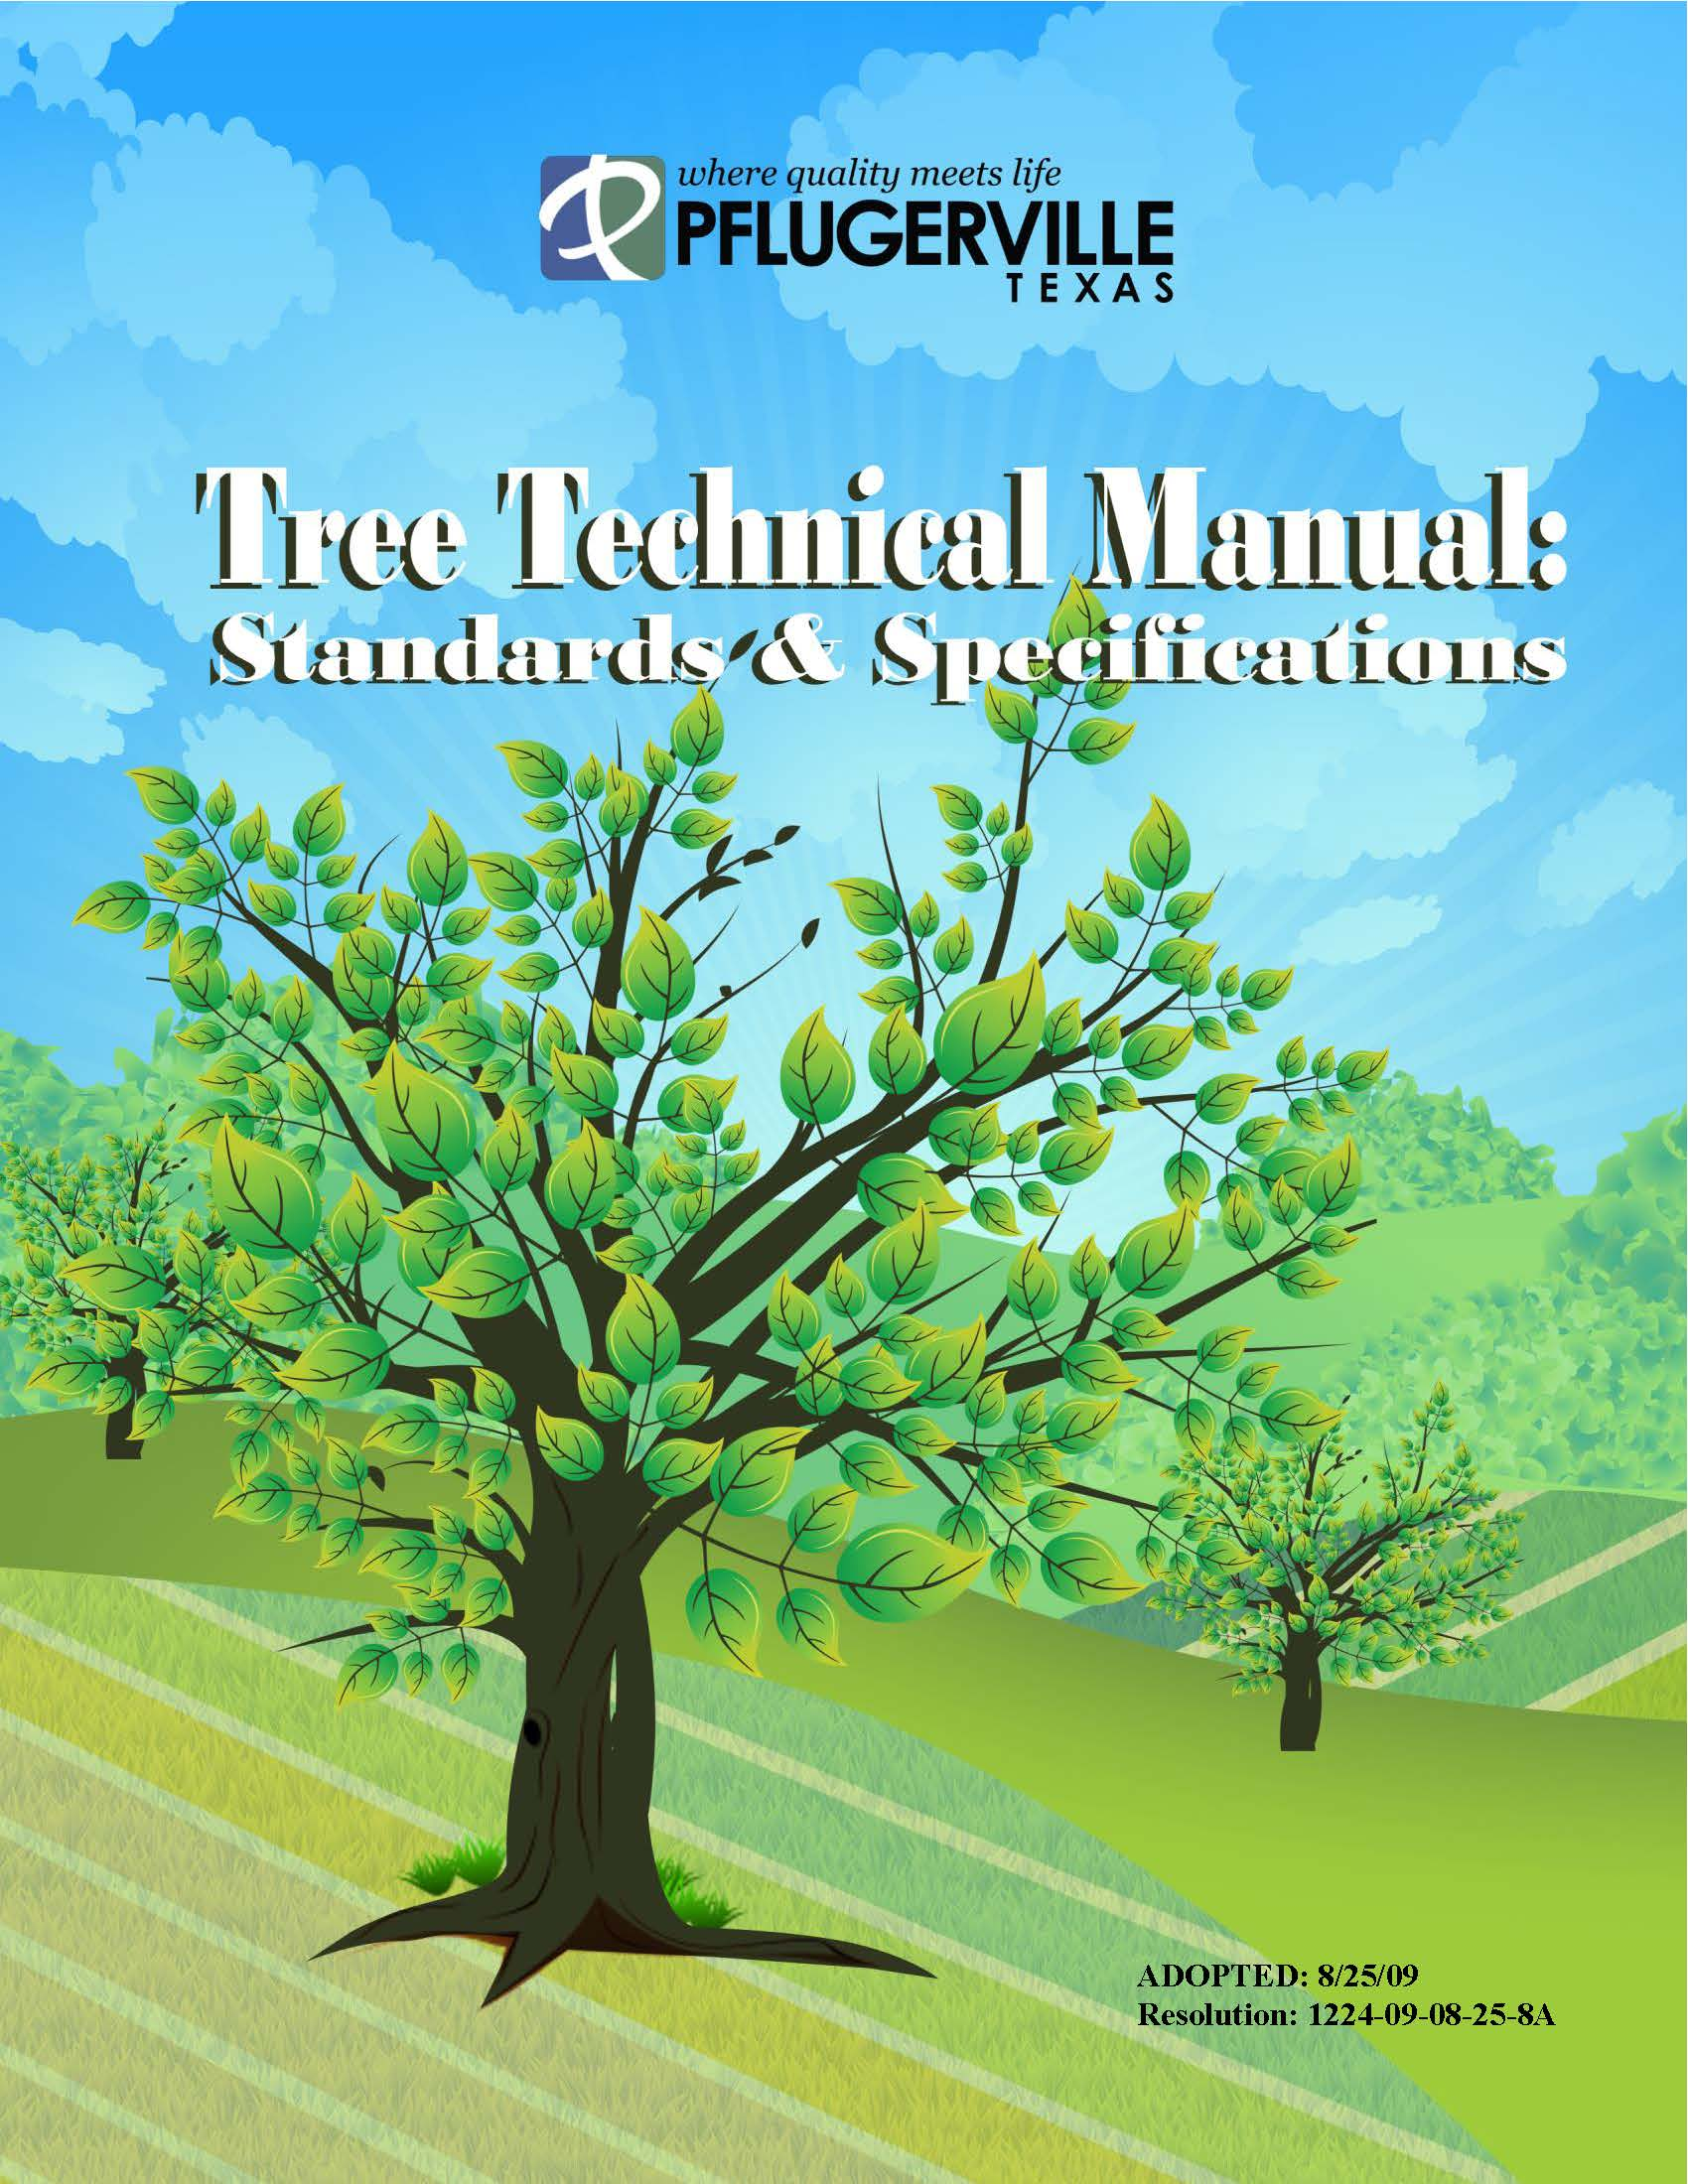 Tree Technical Manual_coversheet